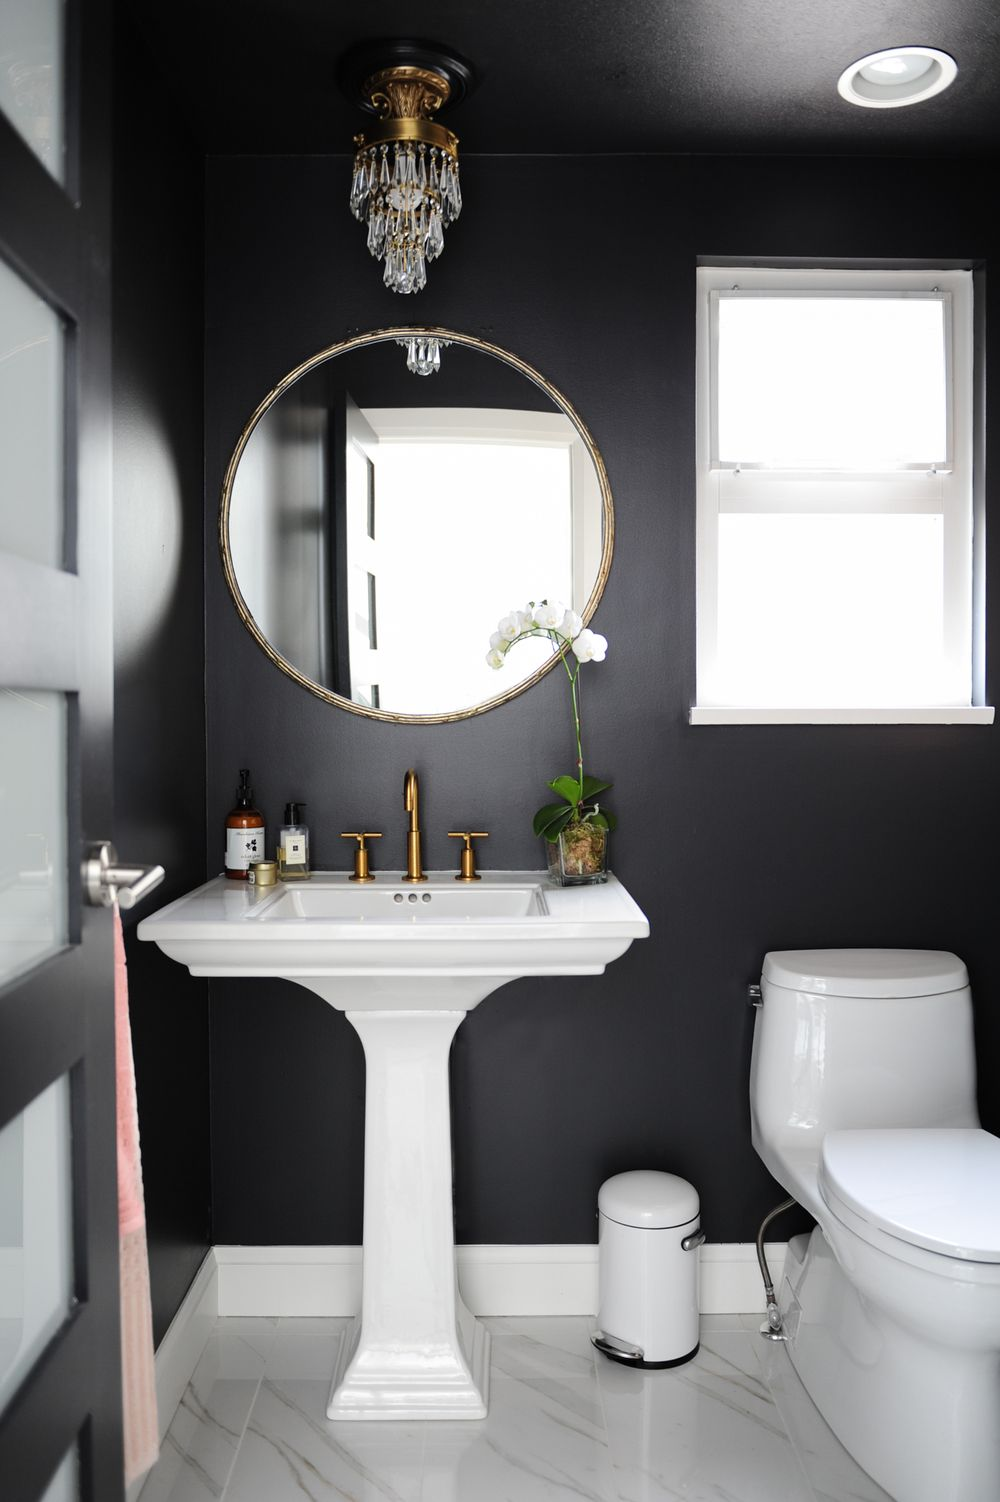 Bathroom Decor Ideas: Dark interiors  Bathroom remodel designs